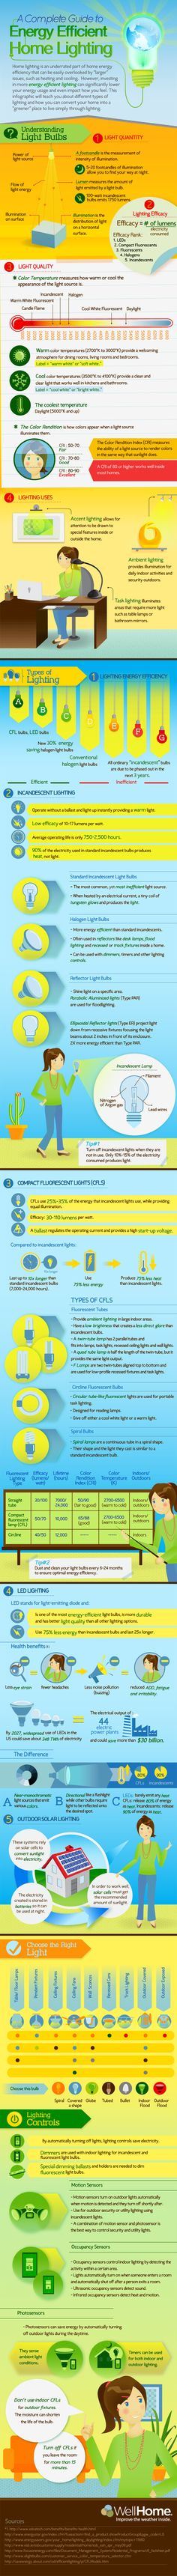 Infographic: Understanding Lighting by WellHome via conservationconservations #Infographic #LIghting